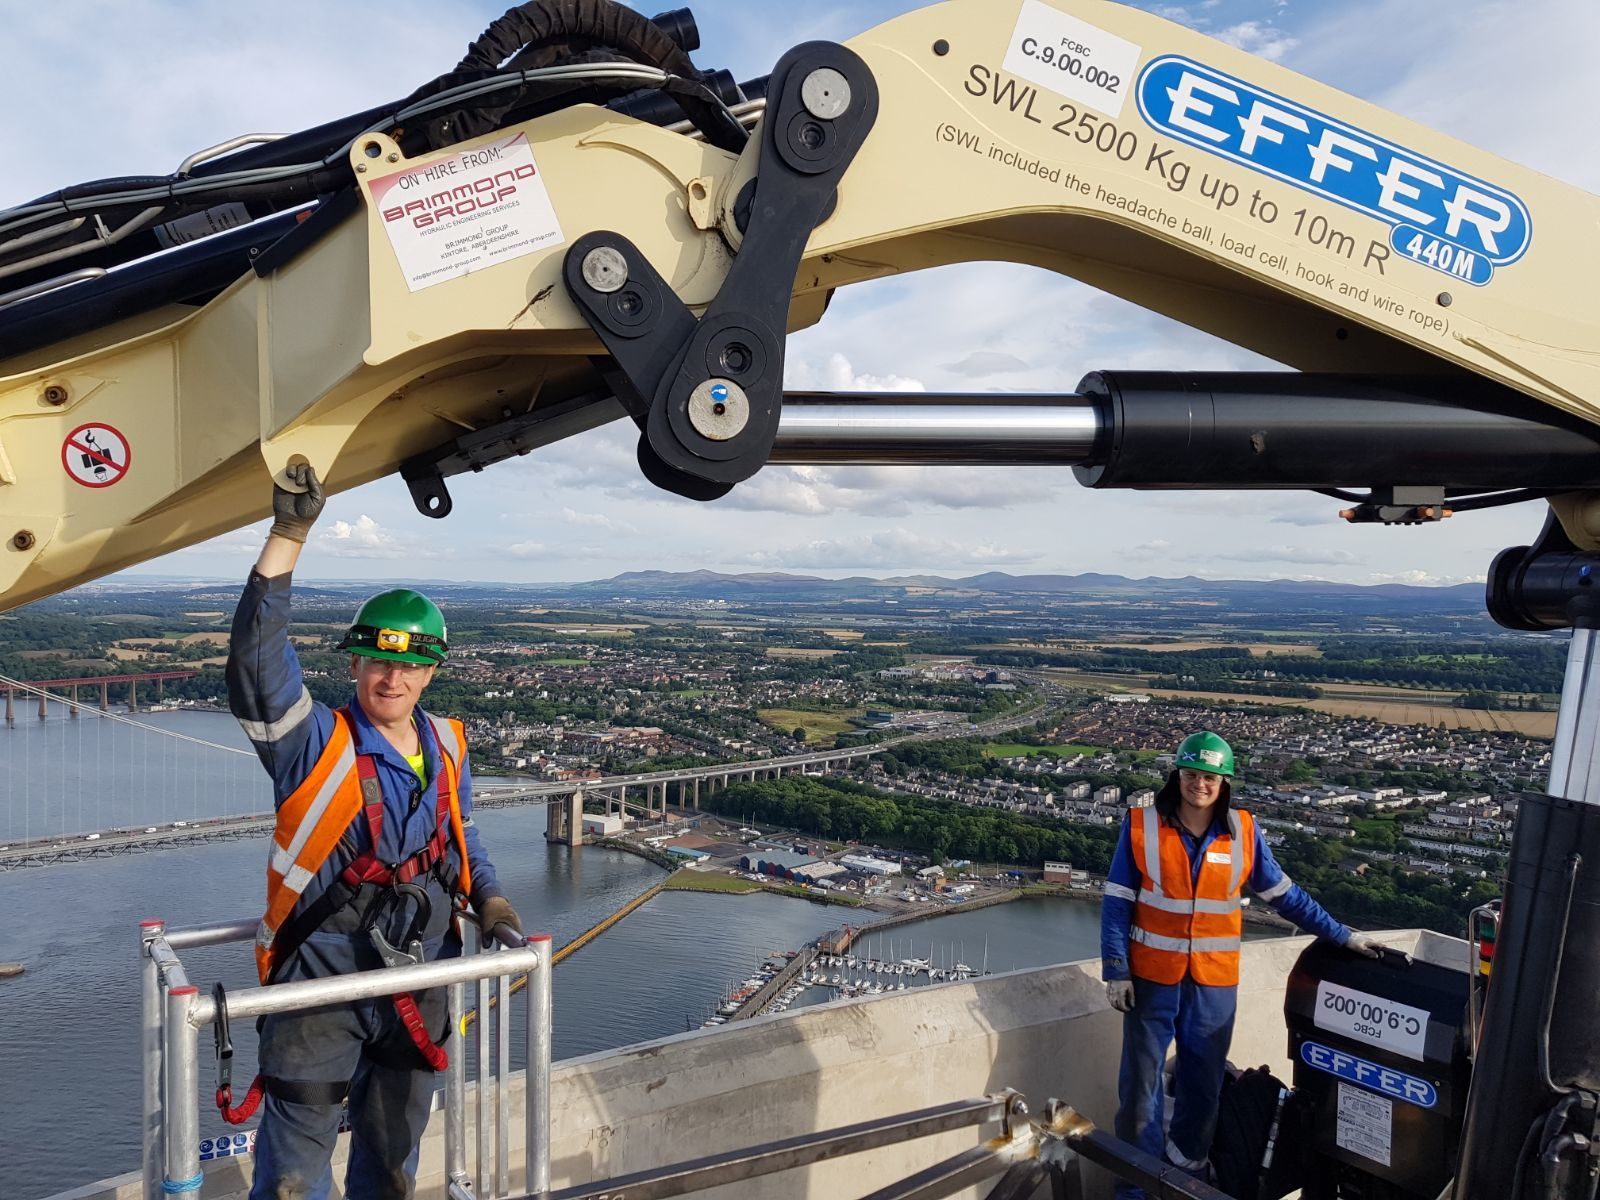 One of Brimmond's Effer cranes at the top of the Queensferry Crossing.